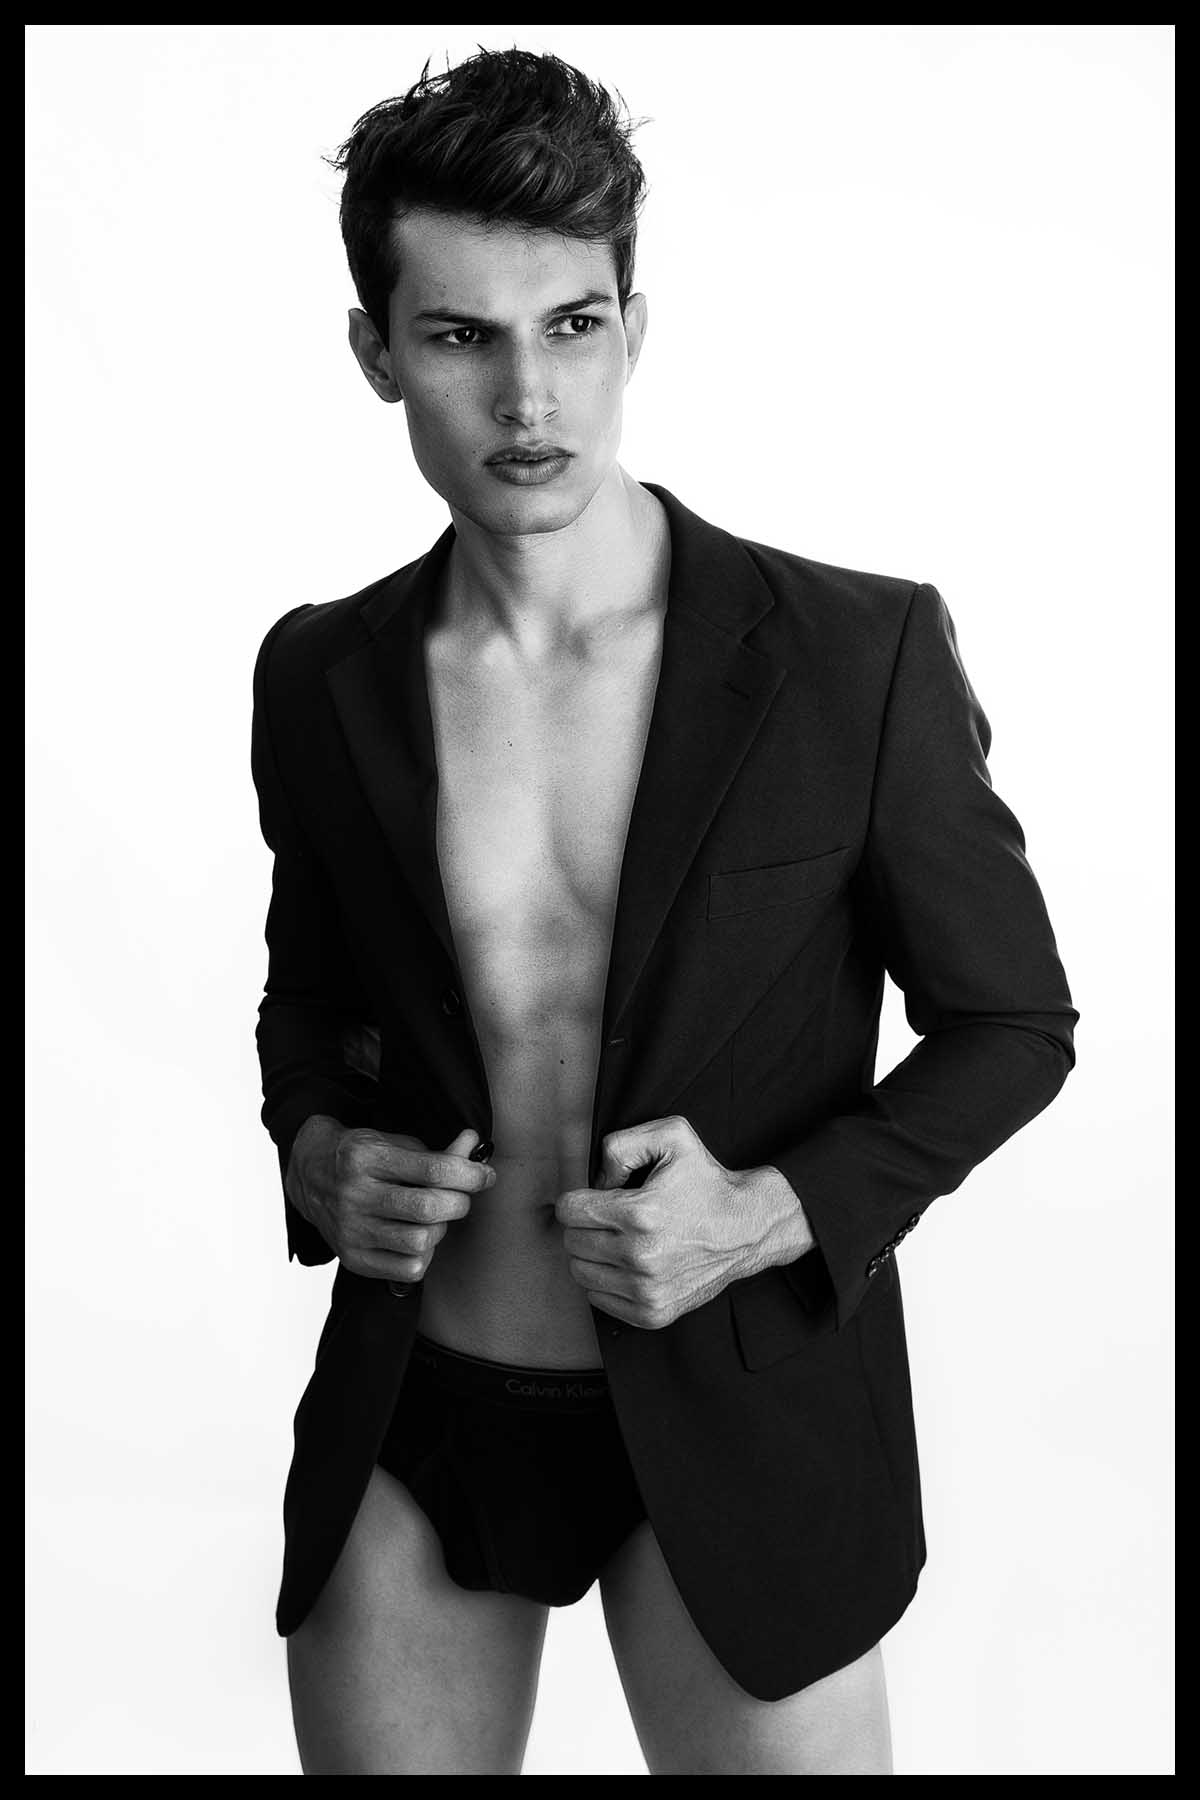 Lucas Queiroz by Letícia Mansur for Brazilian Male Model